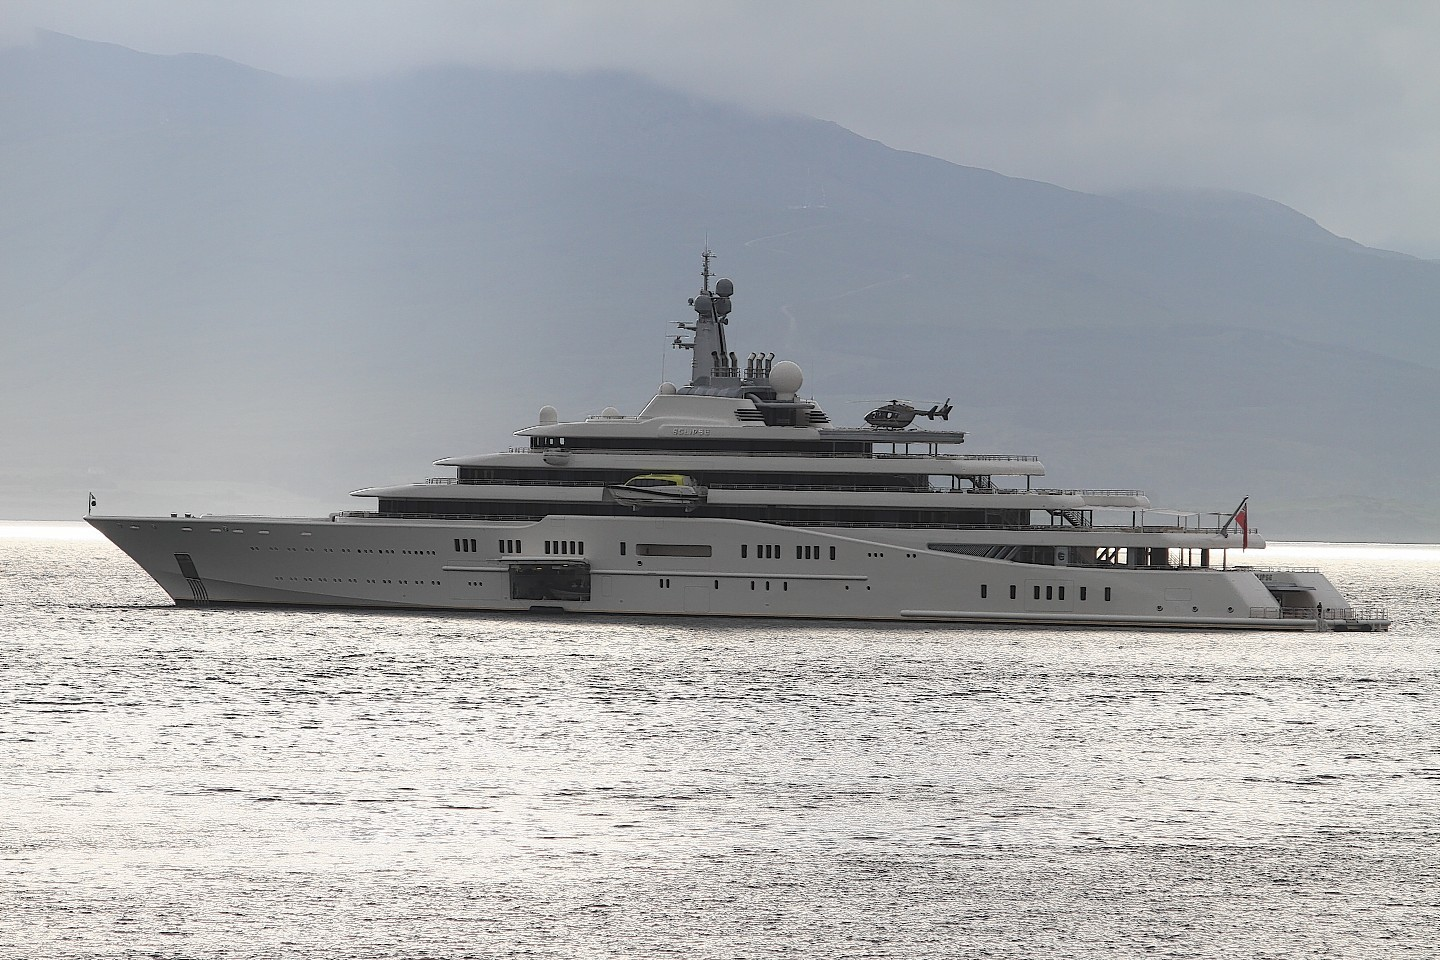 The Yacht Eclipse owned by Roman Abramovitch lies at Anchor Oban Bay